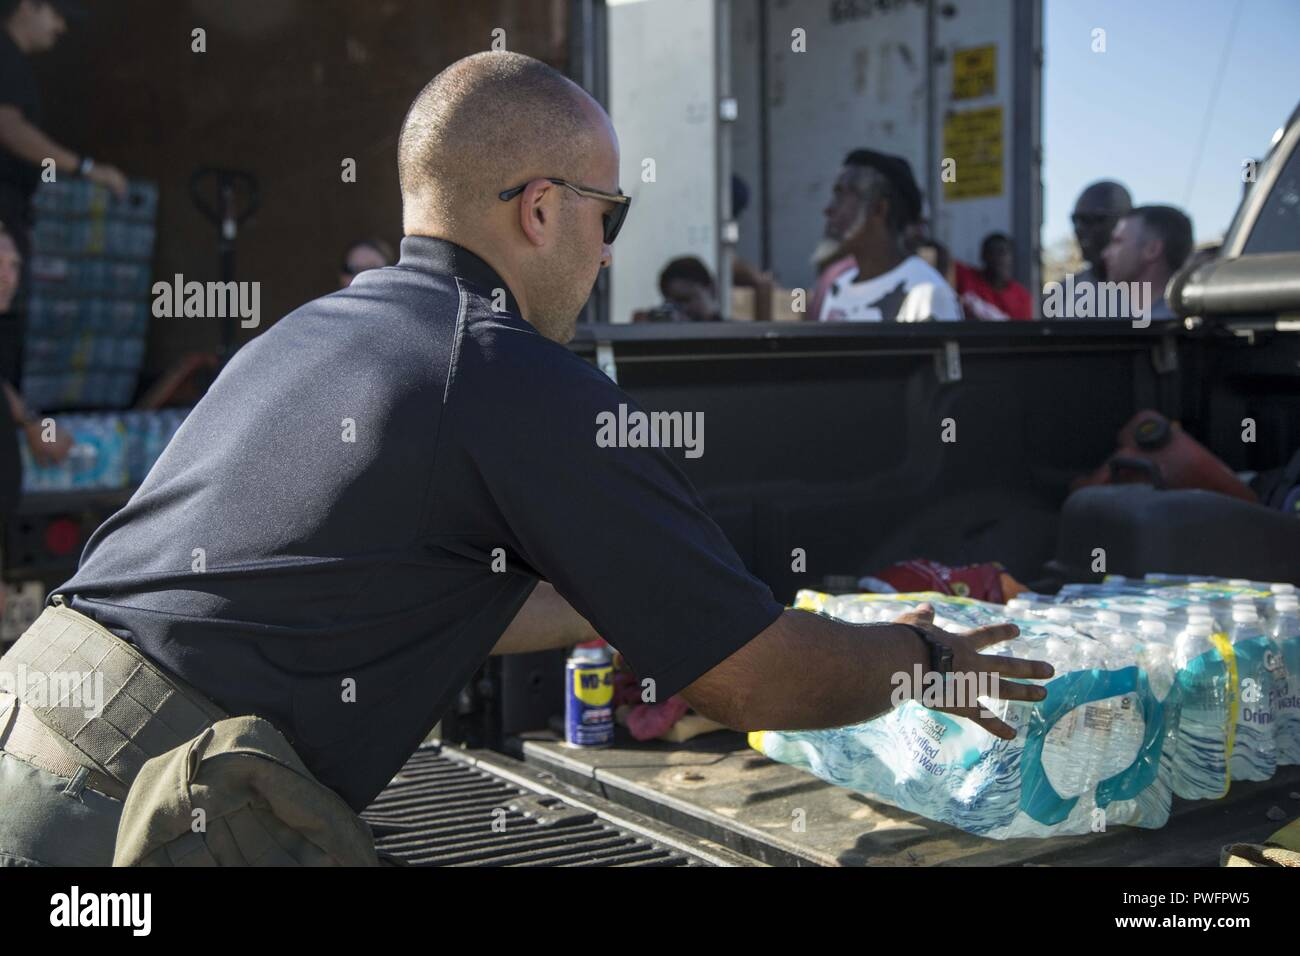 Blountstown, FL, October 13, 2018 - volunteers load vehicles with food and water at a Point of Distribution site during Hurricane Michael relief efforts, October 13, 2018. Point of Distribution or POD is where the public goes to pick up emergency supplies following a disaster. Cpl. Jacklyn Farias /CAISE. () - Stock Image